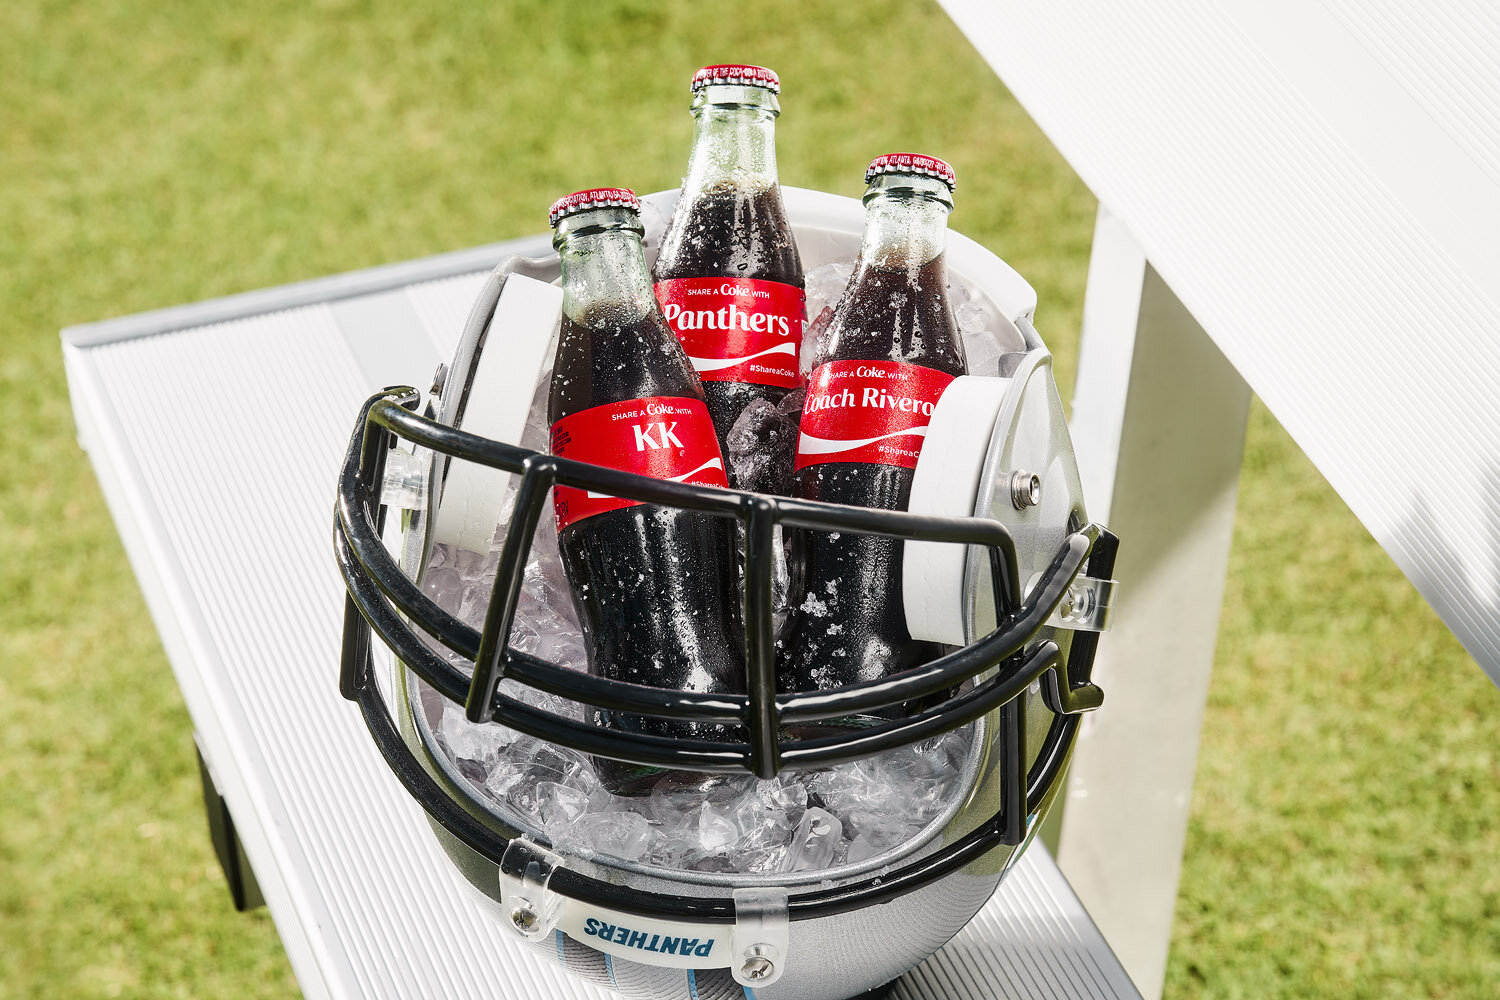 hales photo-coca-cola-carolina panthers-charlotte photography advertising marketing campaign production commercial editorial photographer atlanta-0026.jpg